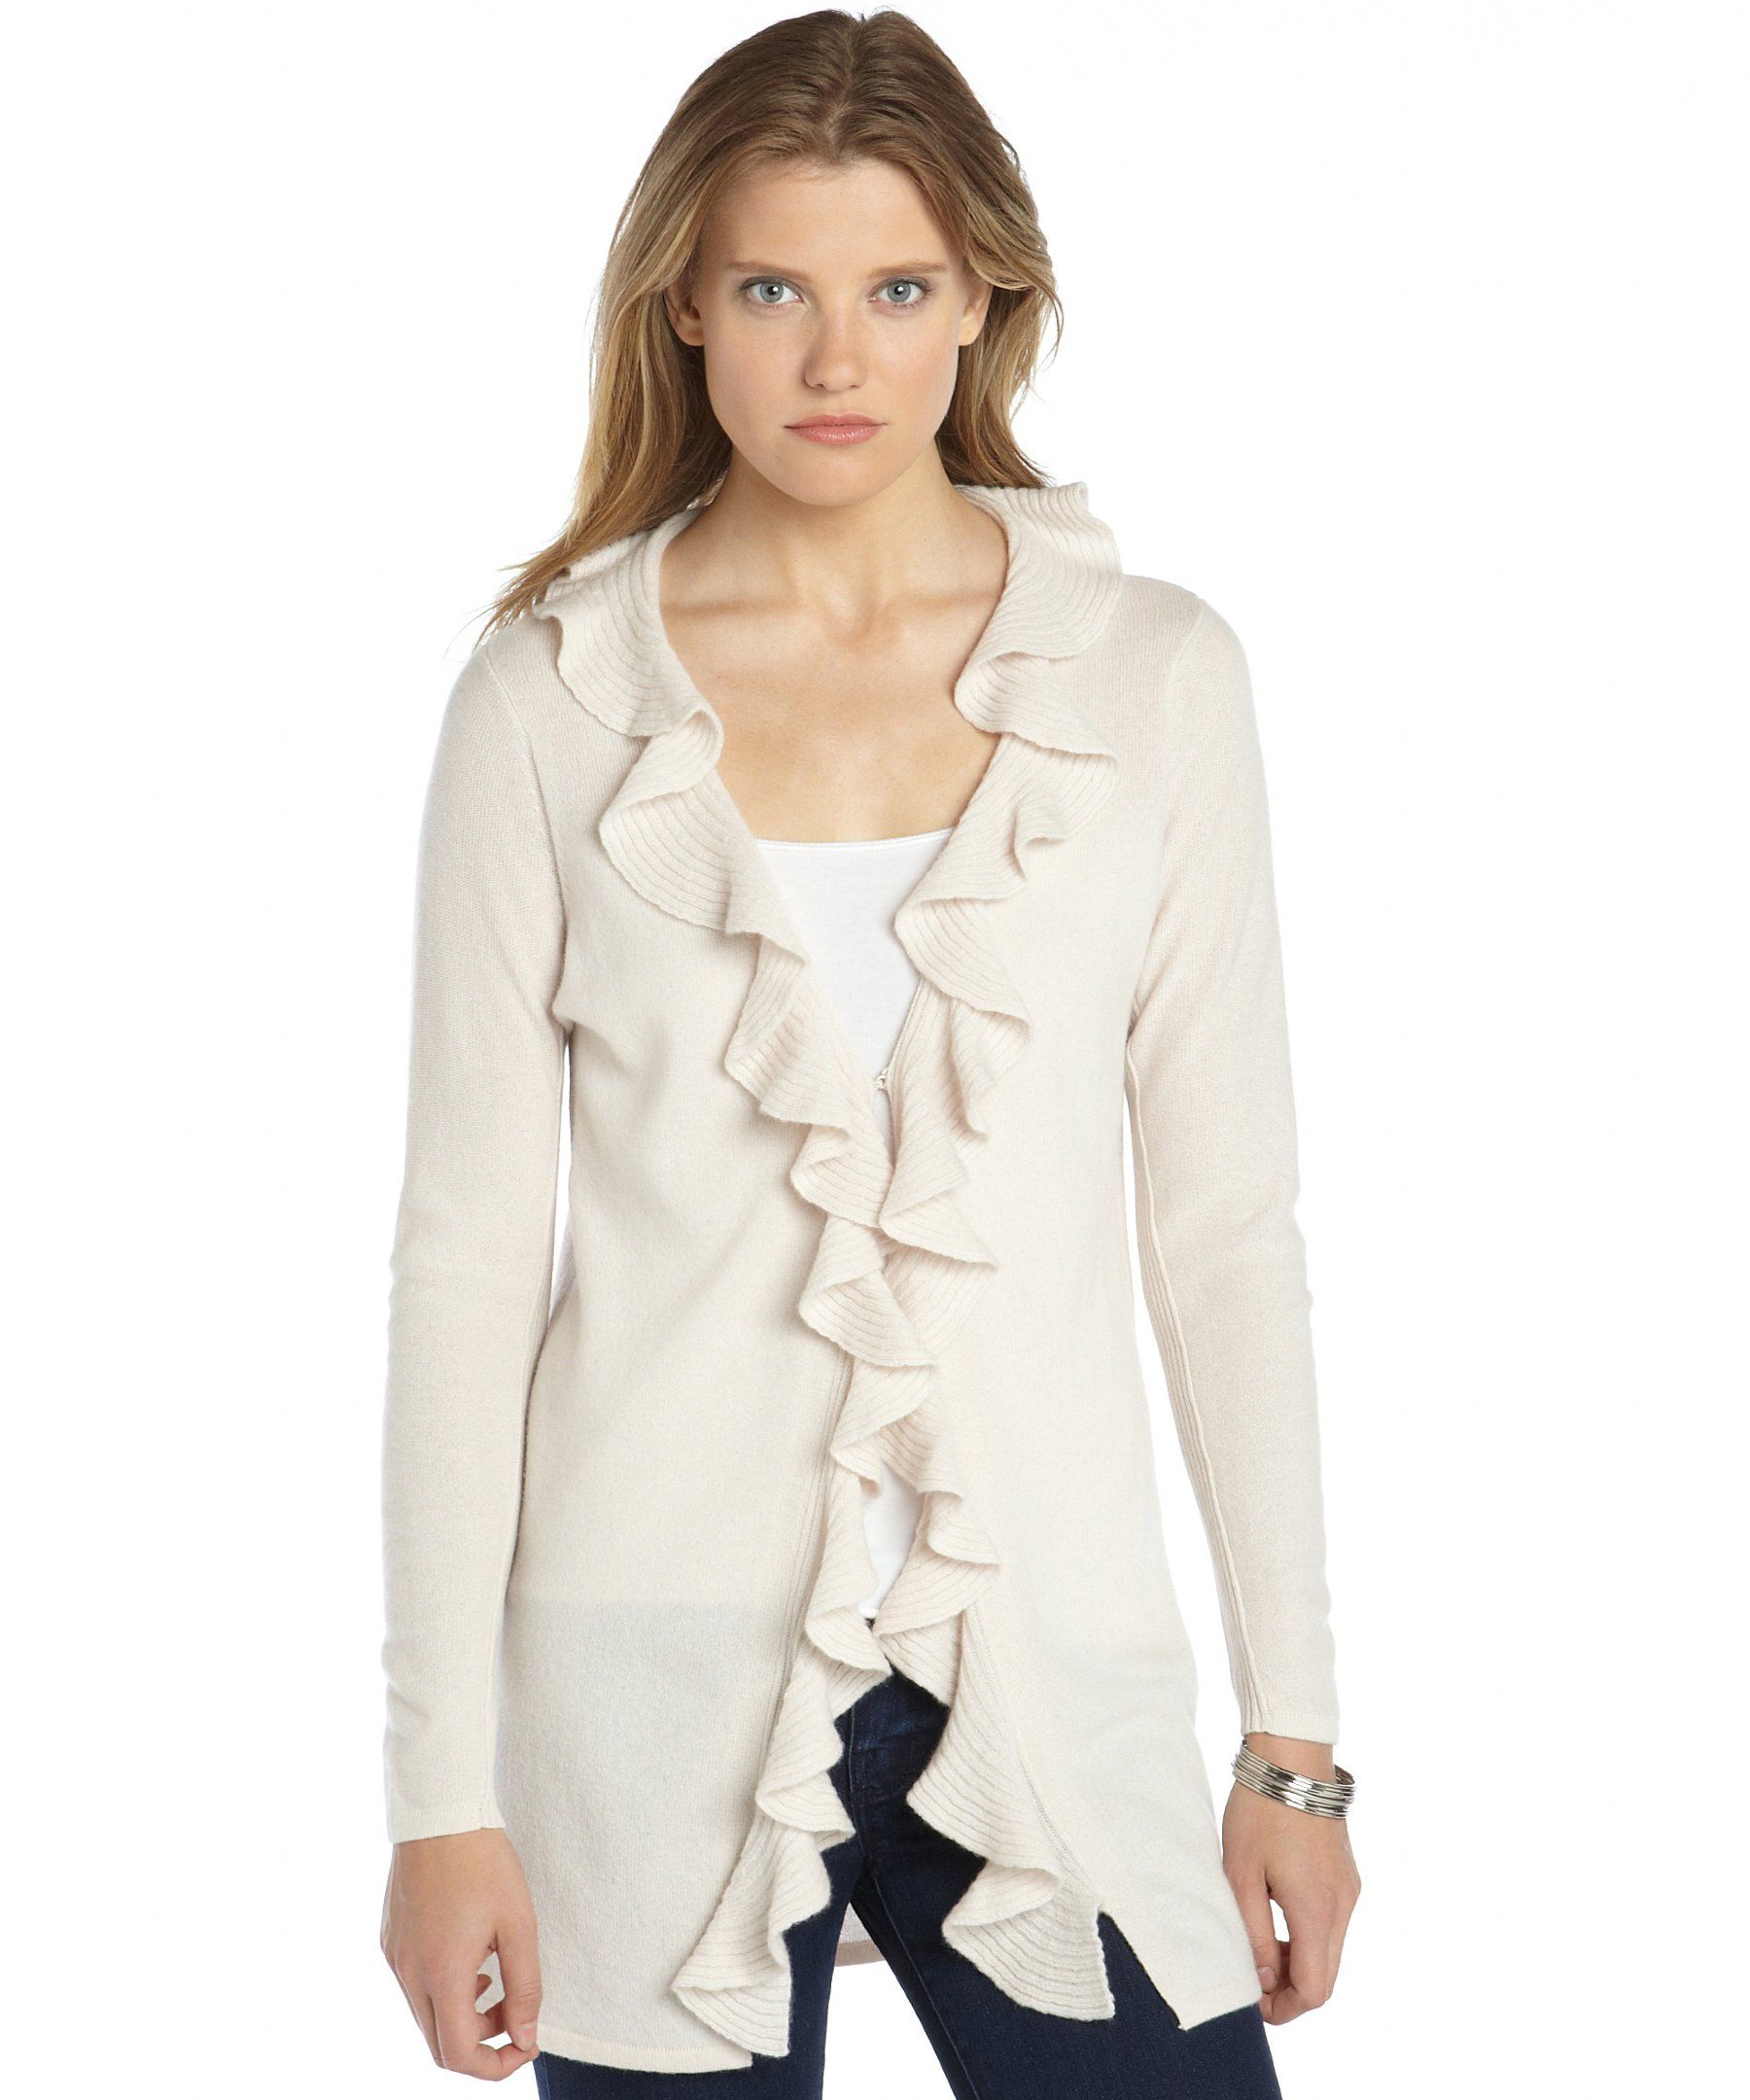 Magaschoni ivory cashmere knit ruffle front cardigan sweater ...